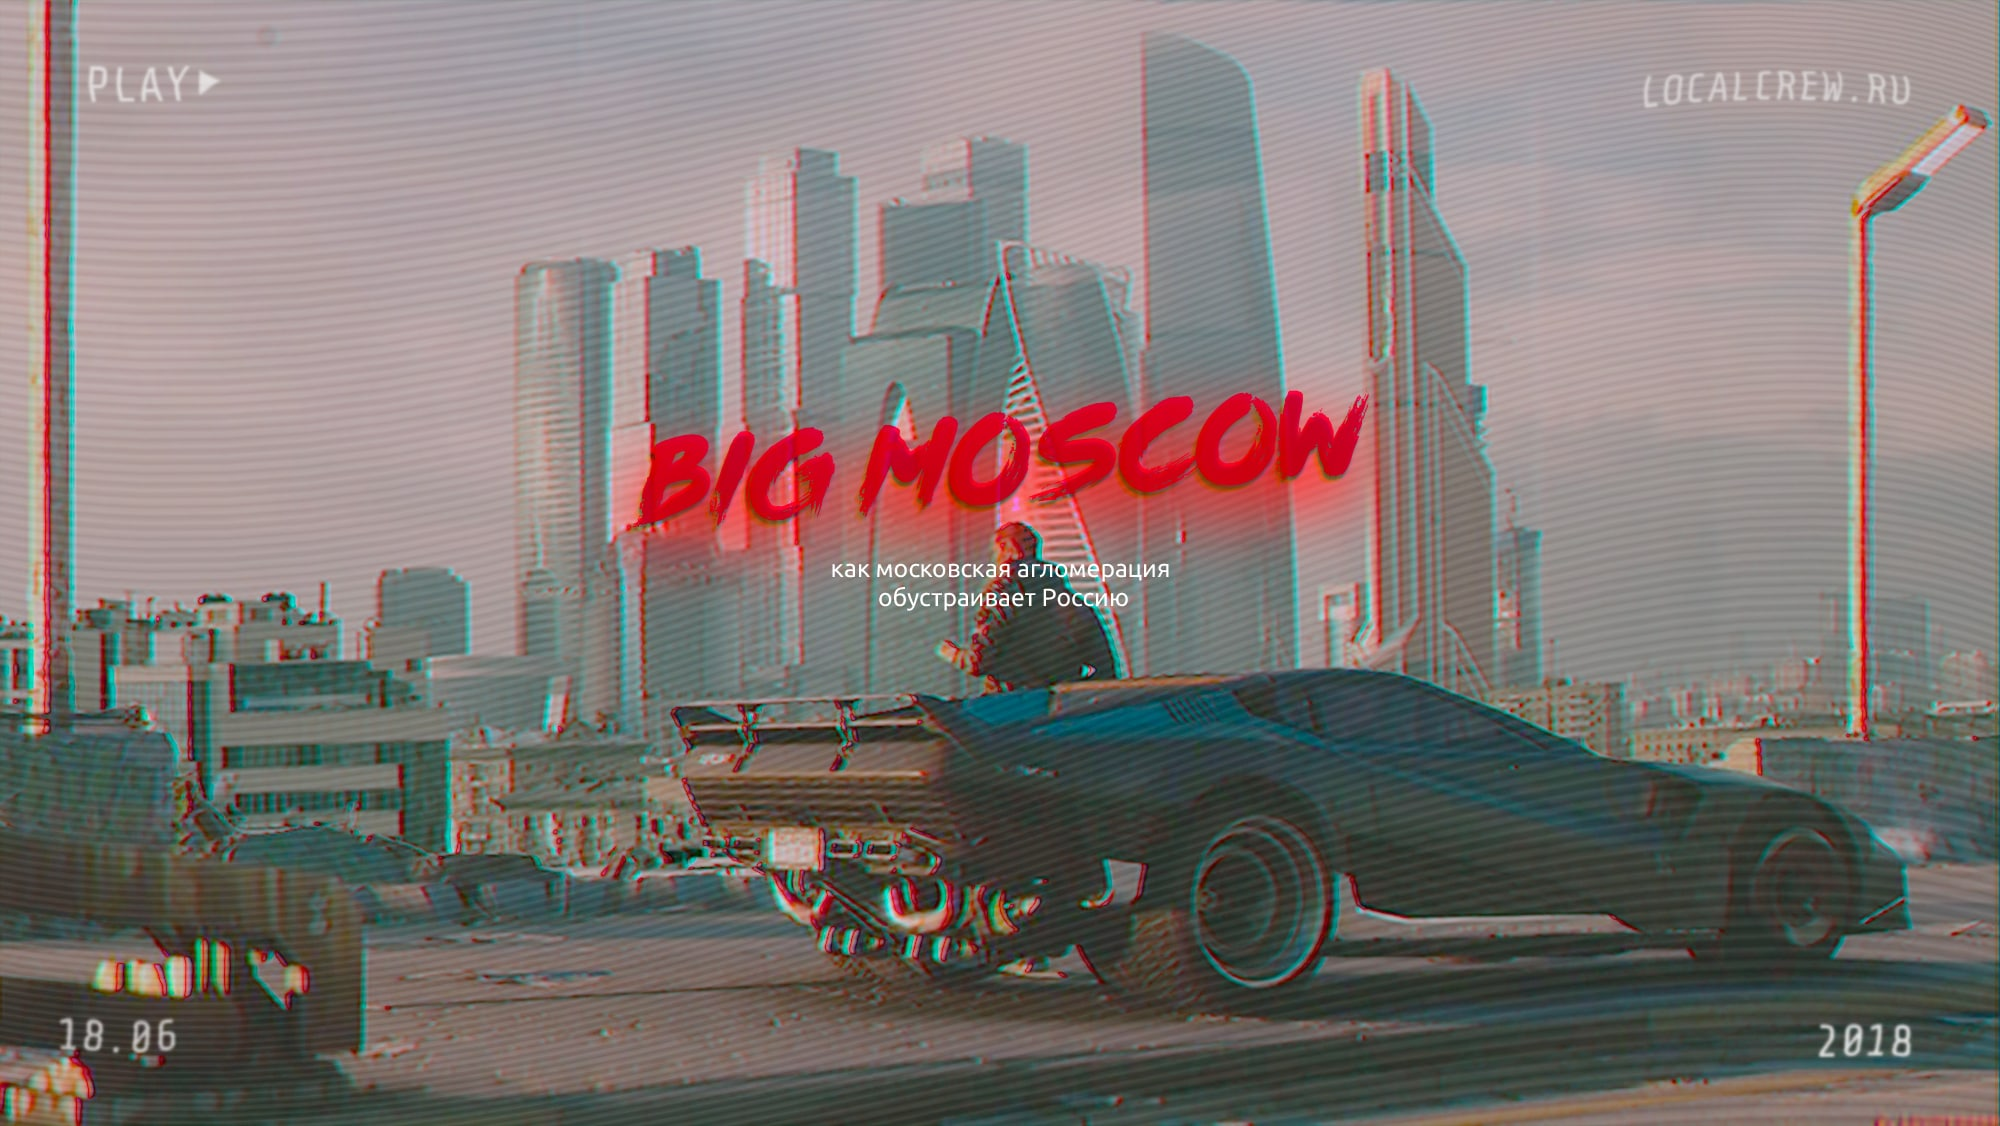 Big Moscow